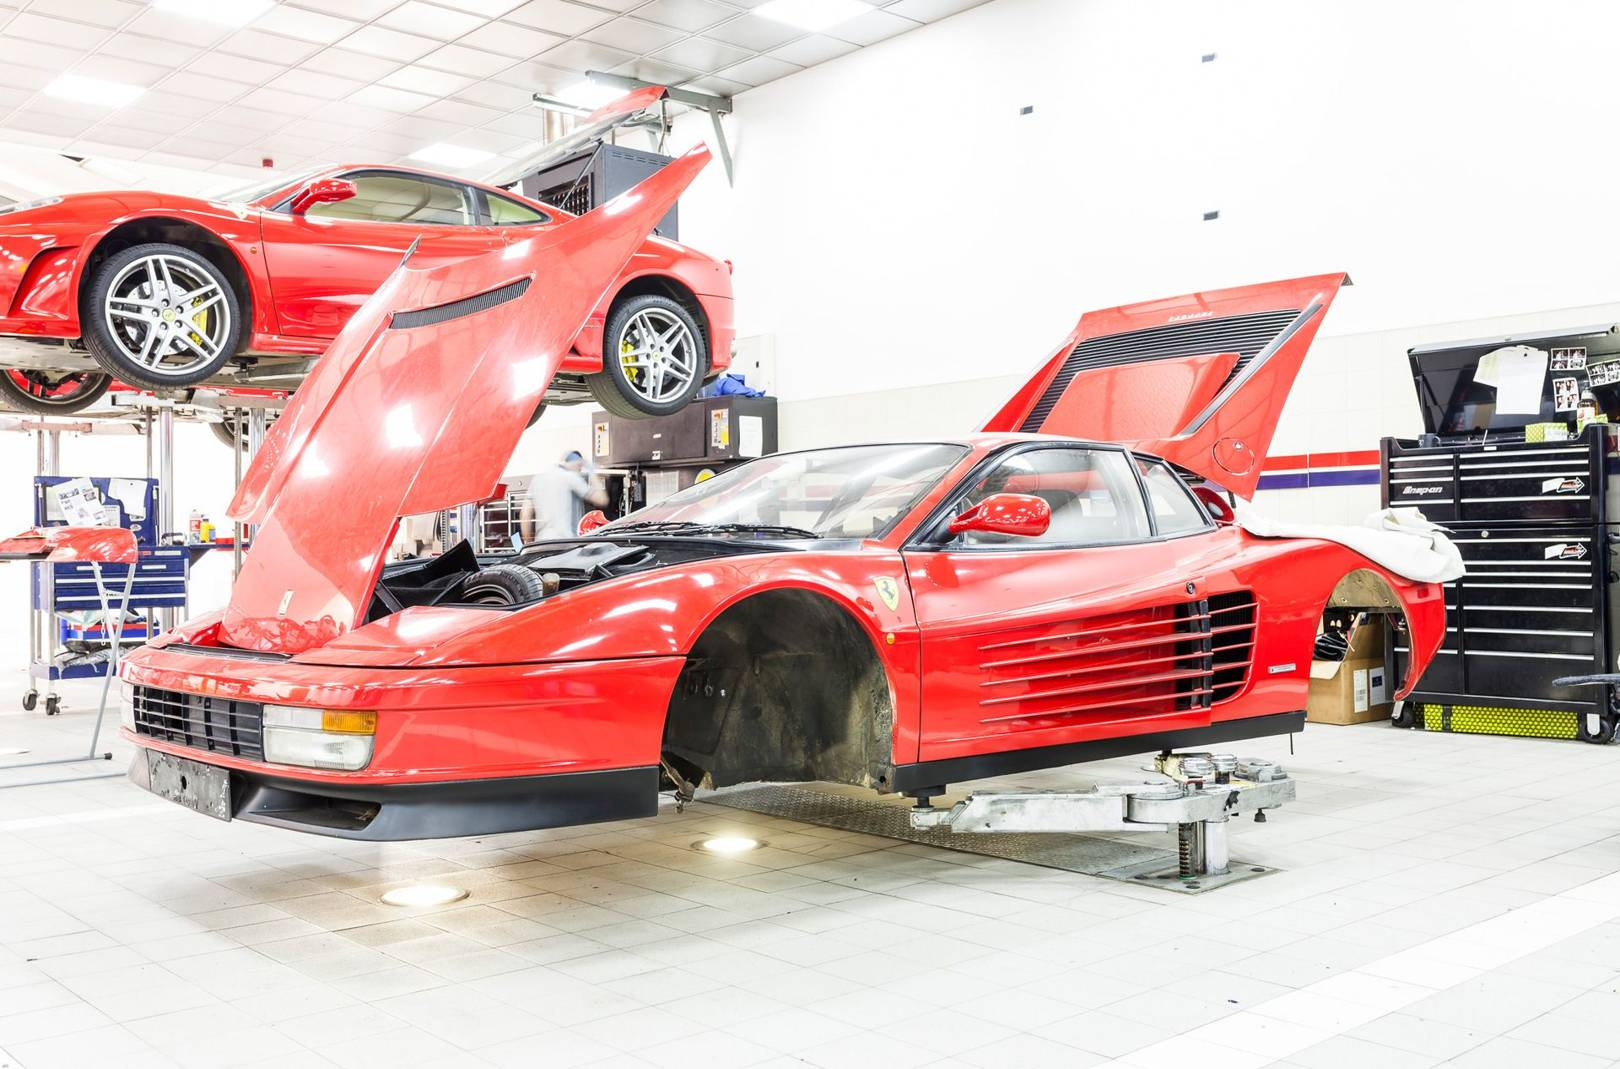 a book best ferrari tickets dhabi at world attractions abu experience where to tours and rides buy driving